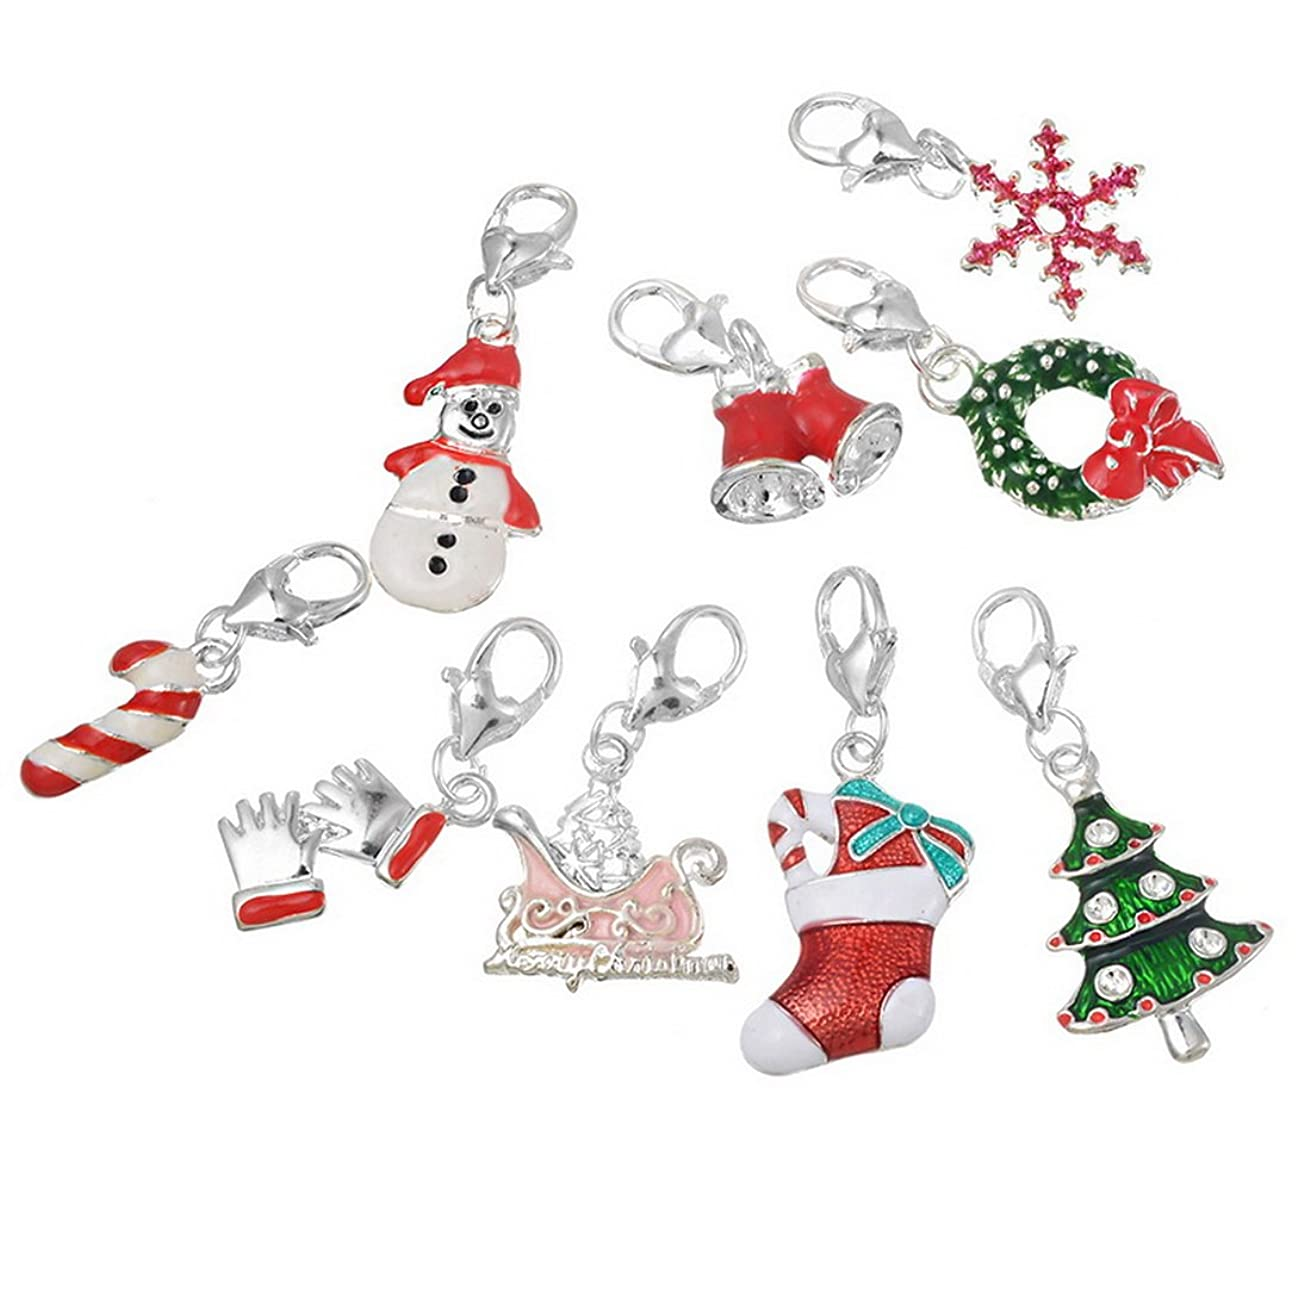 Souarts Mixed Christmas Charms Pendants for Necklace Making (20pcs clip on charms)